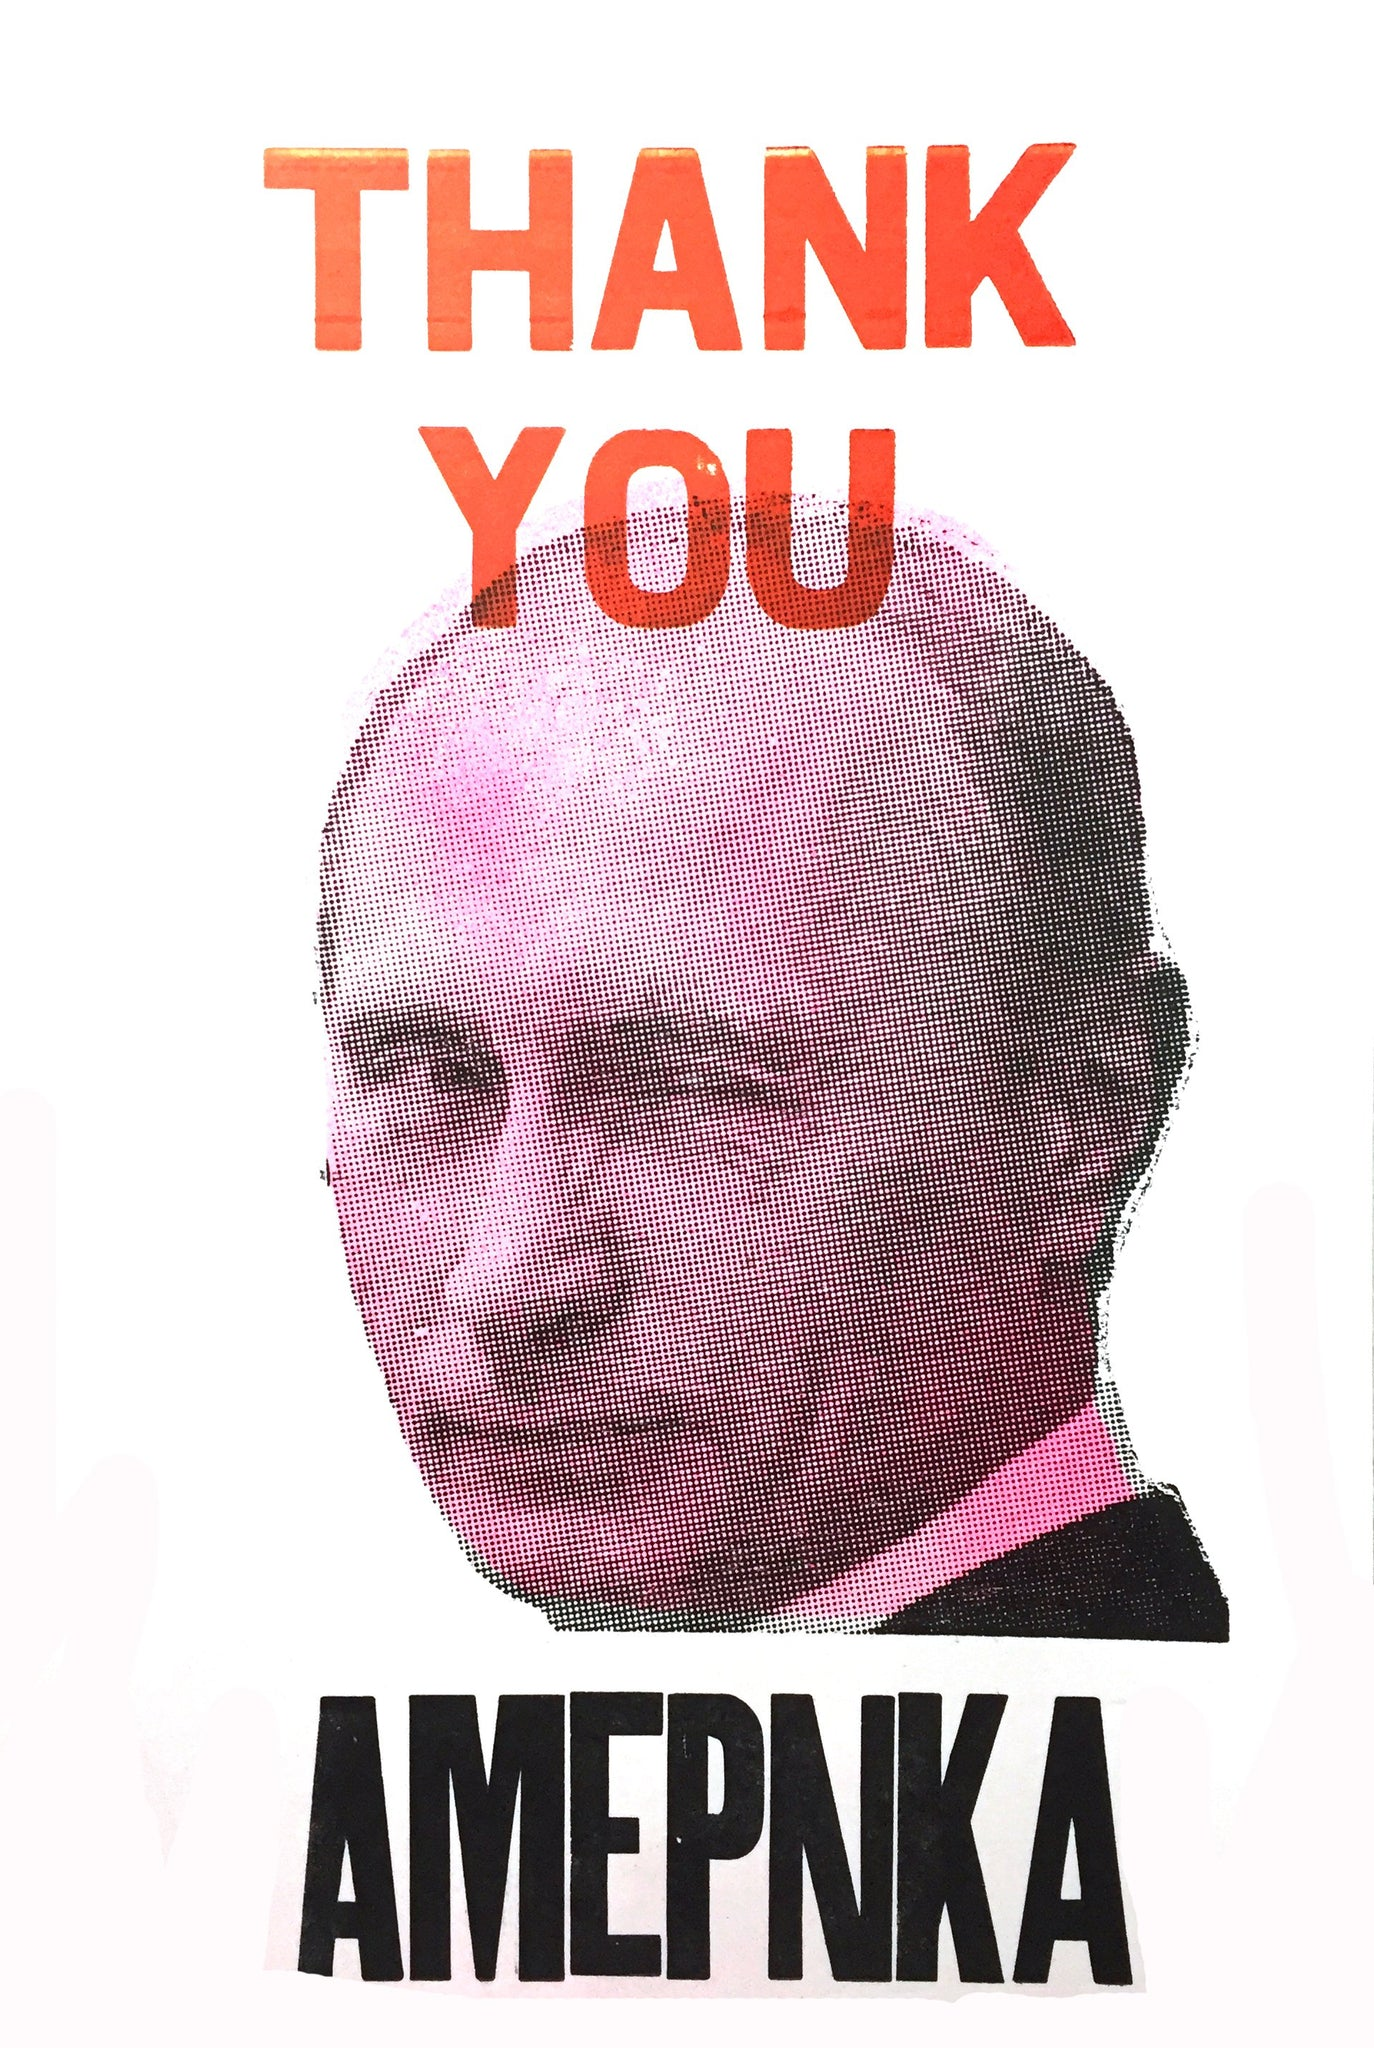 Putin on the Ritz (Agitprop)